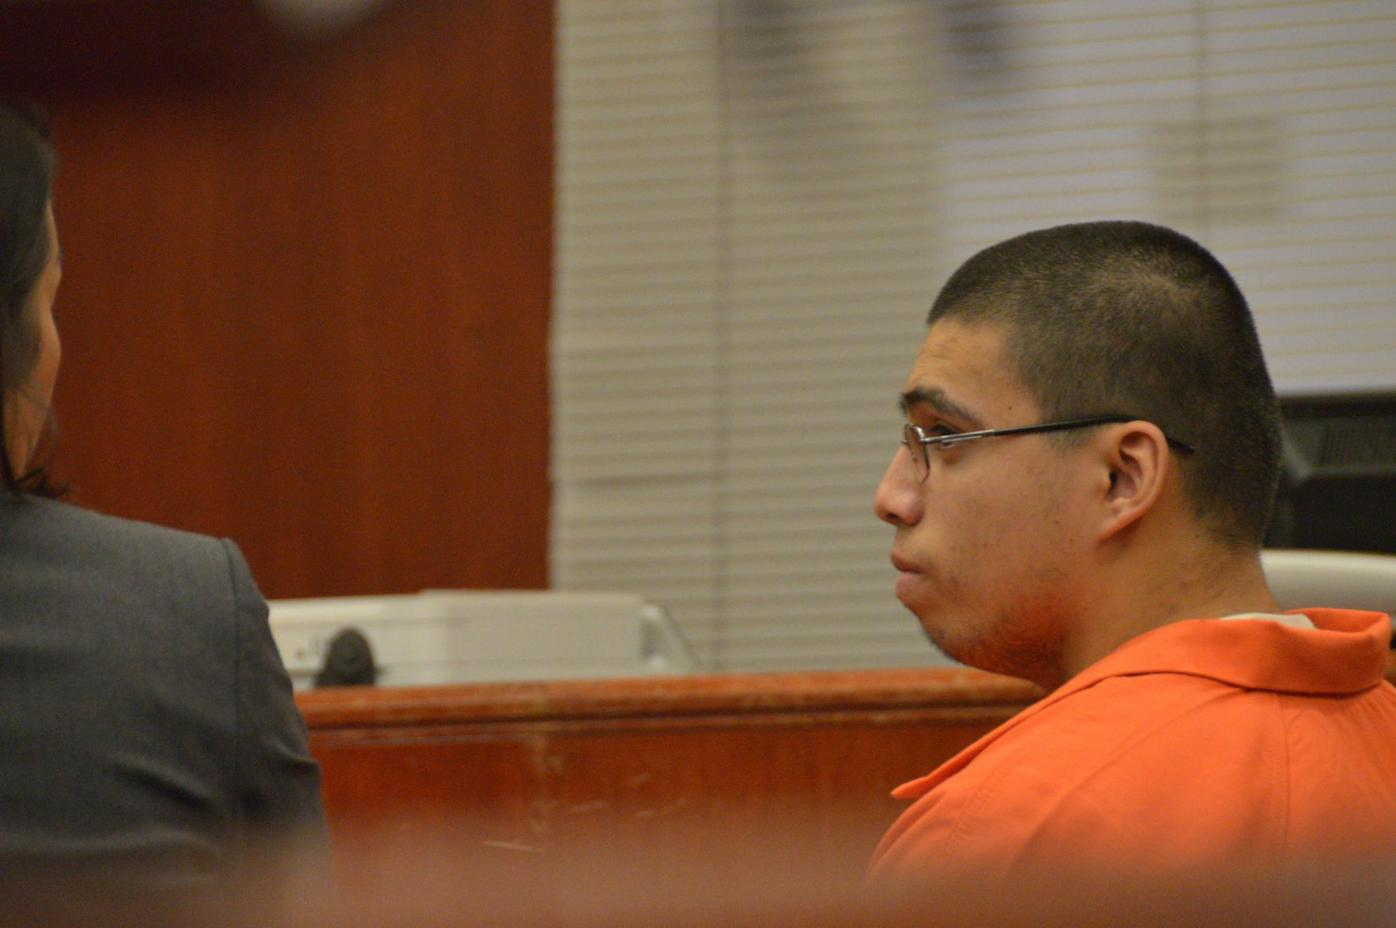 Judge Upholds Murder Charges Against Suspected Guadalupe